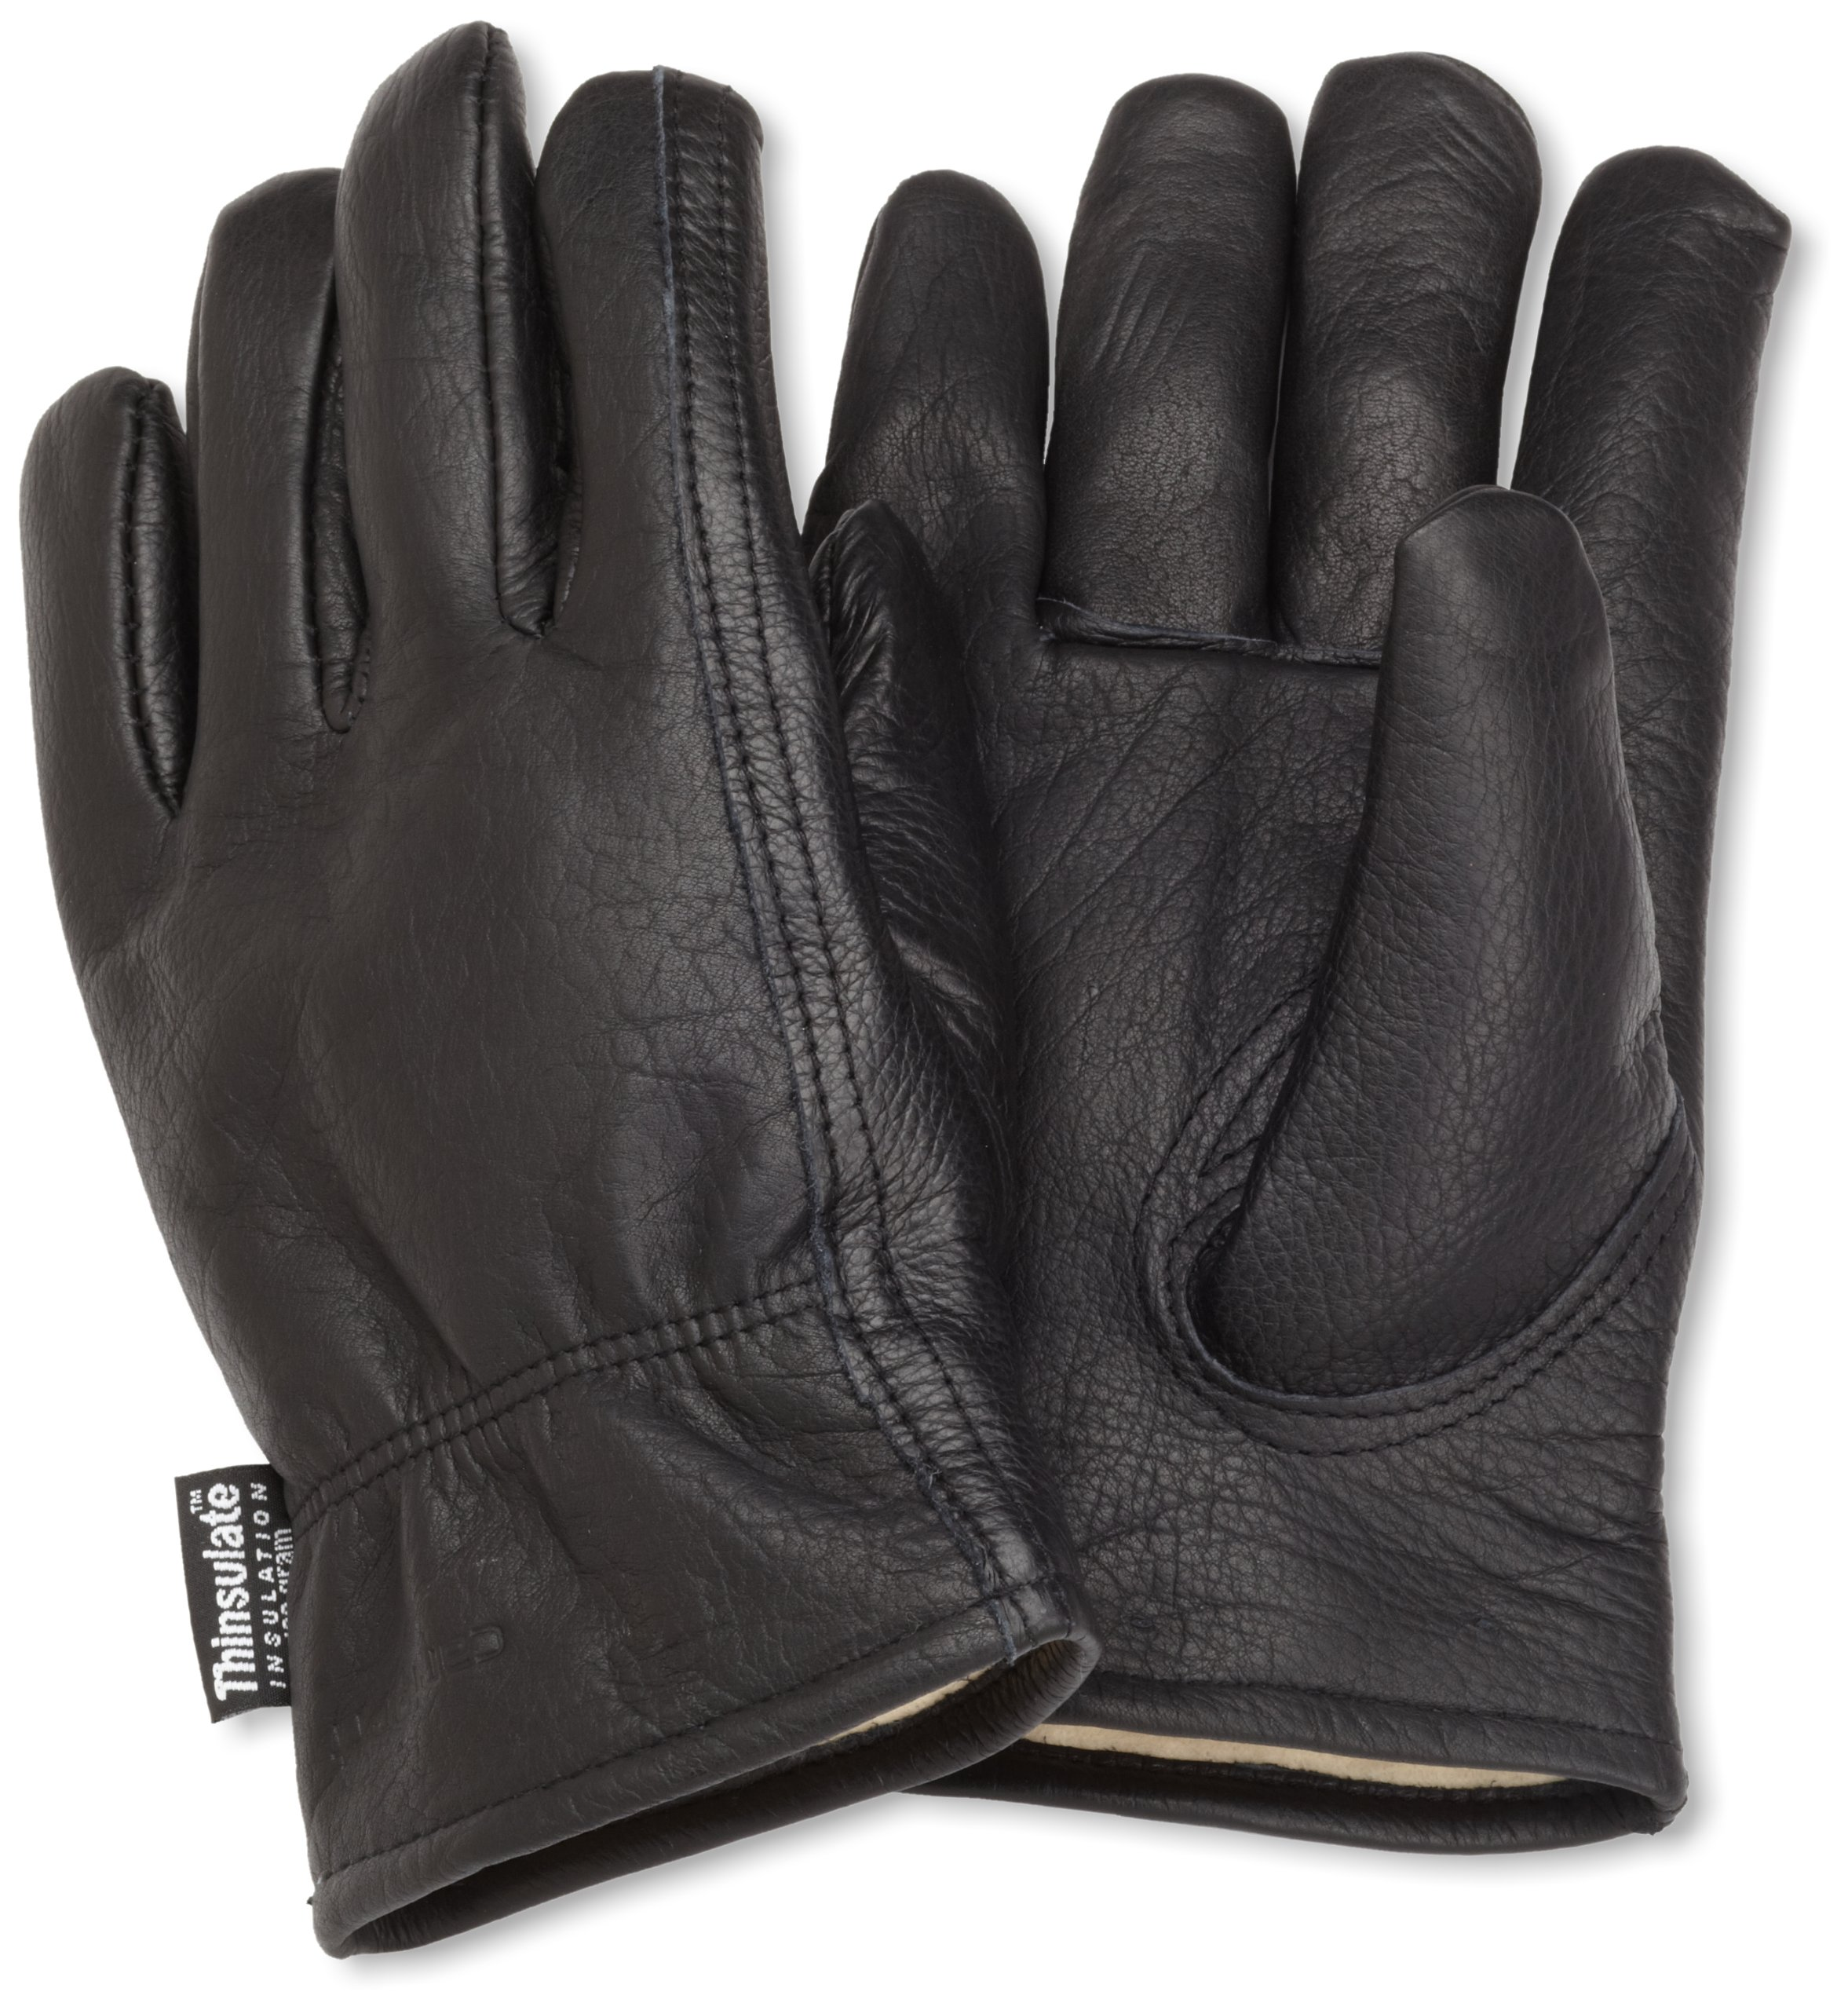 Carhartt Men's Insulated Full Grain Leather Driver Work Glove, Black, X-Large